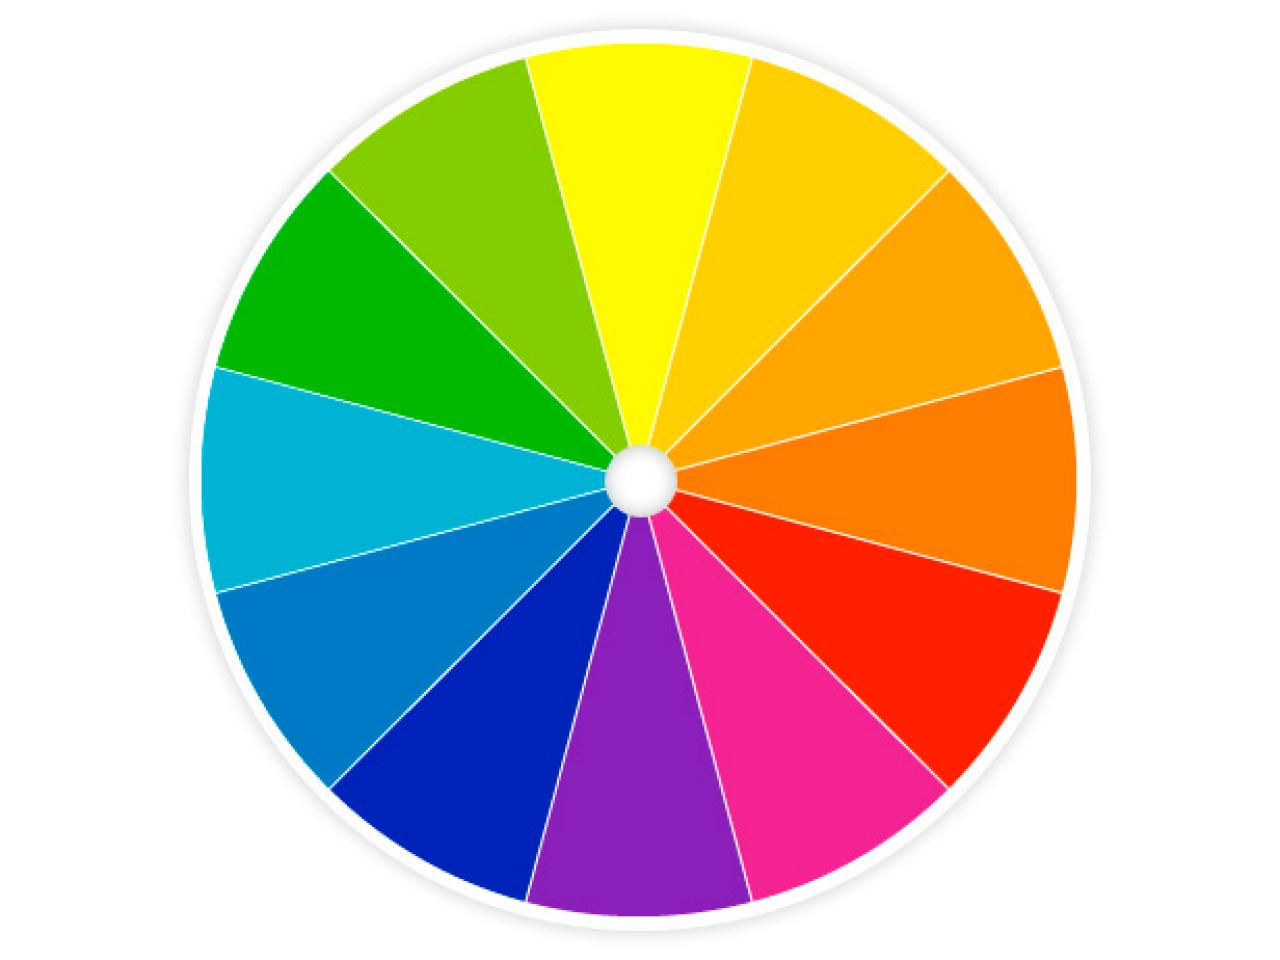 Color wheel generic image